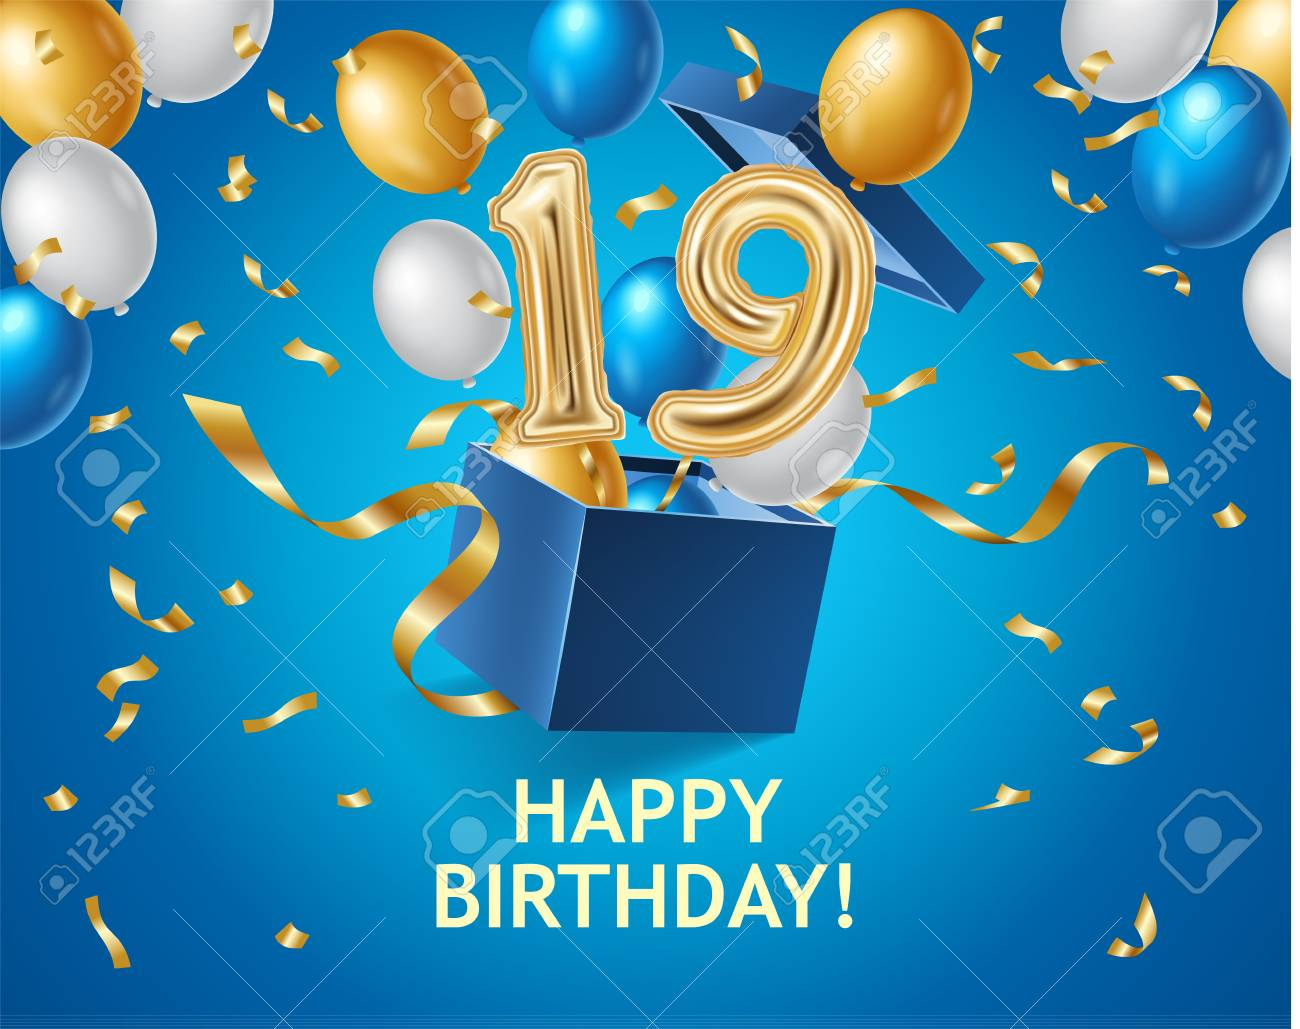 Happy Birthday banner with gift box, air balloons, gold ribbons - 111206997